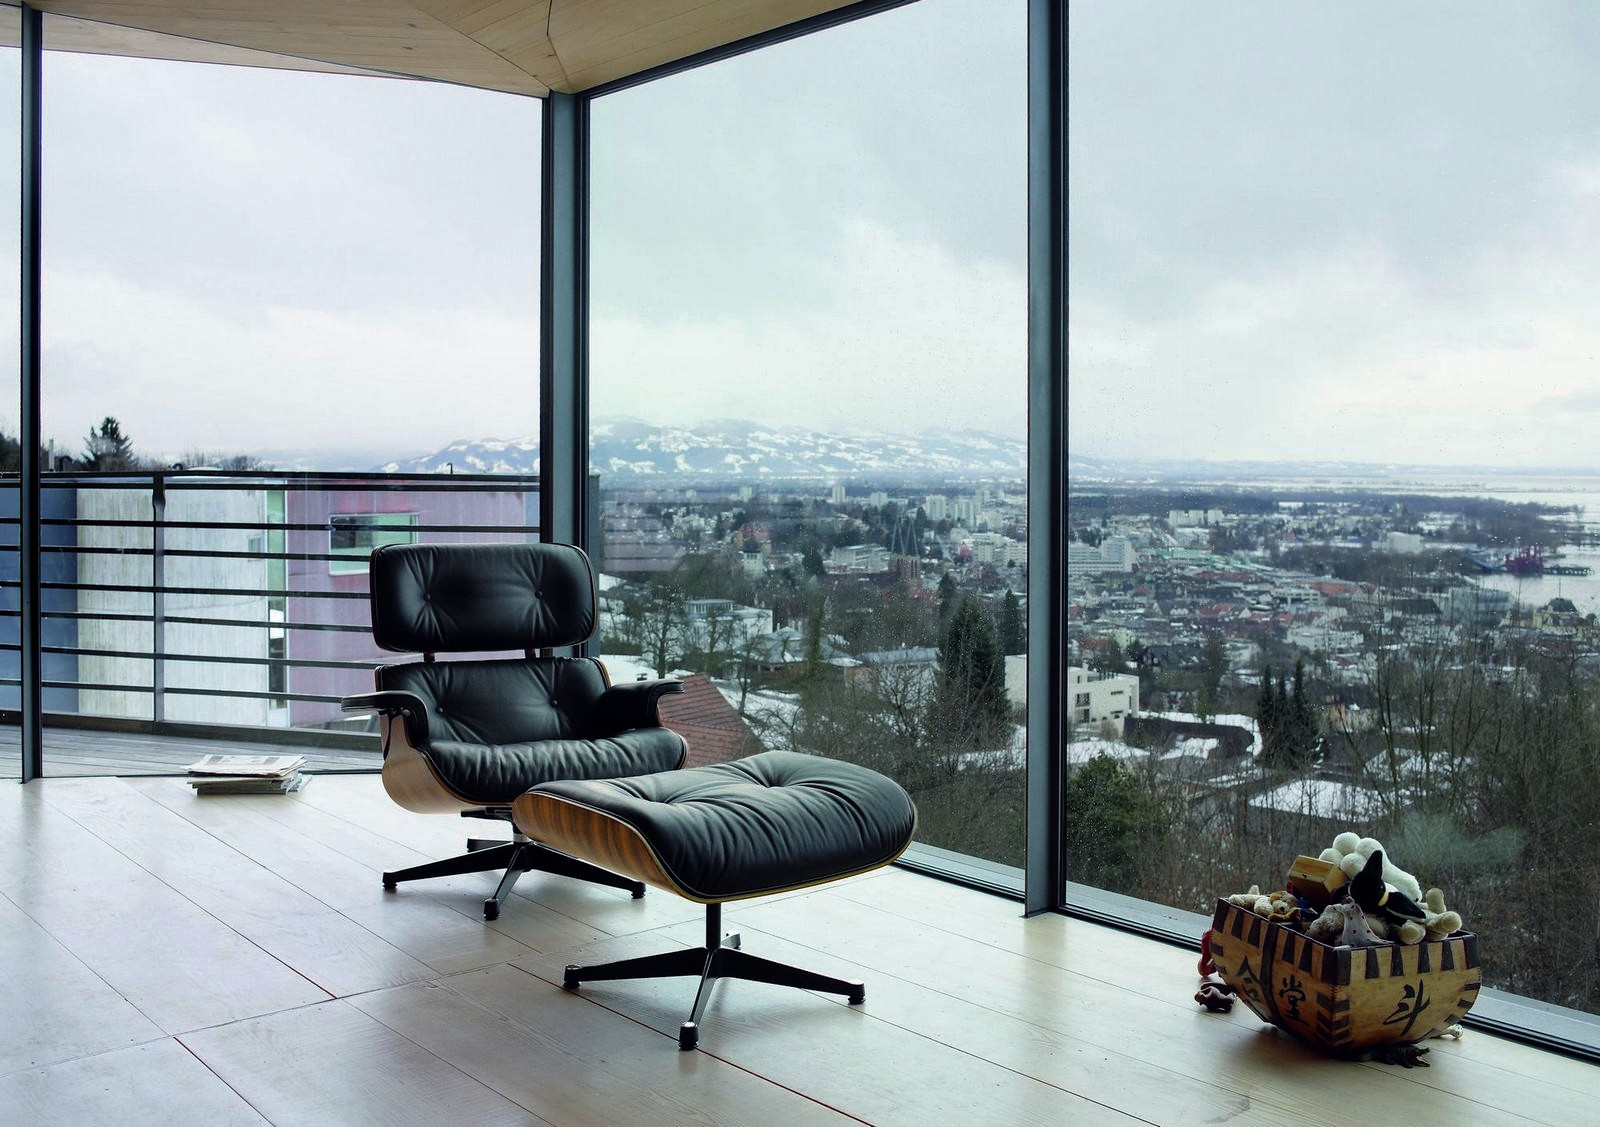 The Best Eames Lounge Chair according to Reddit Communities